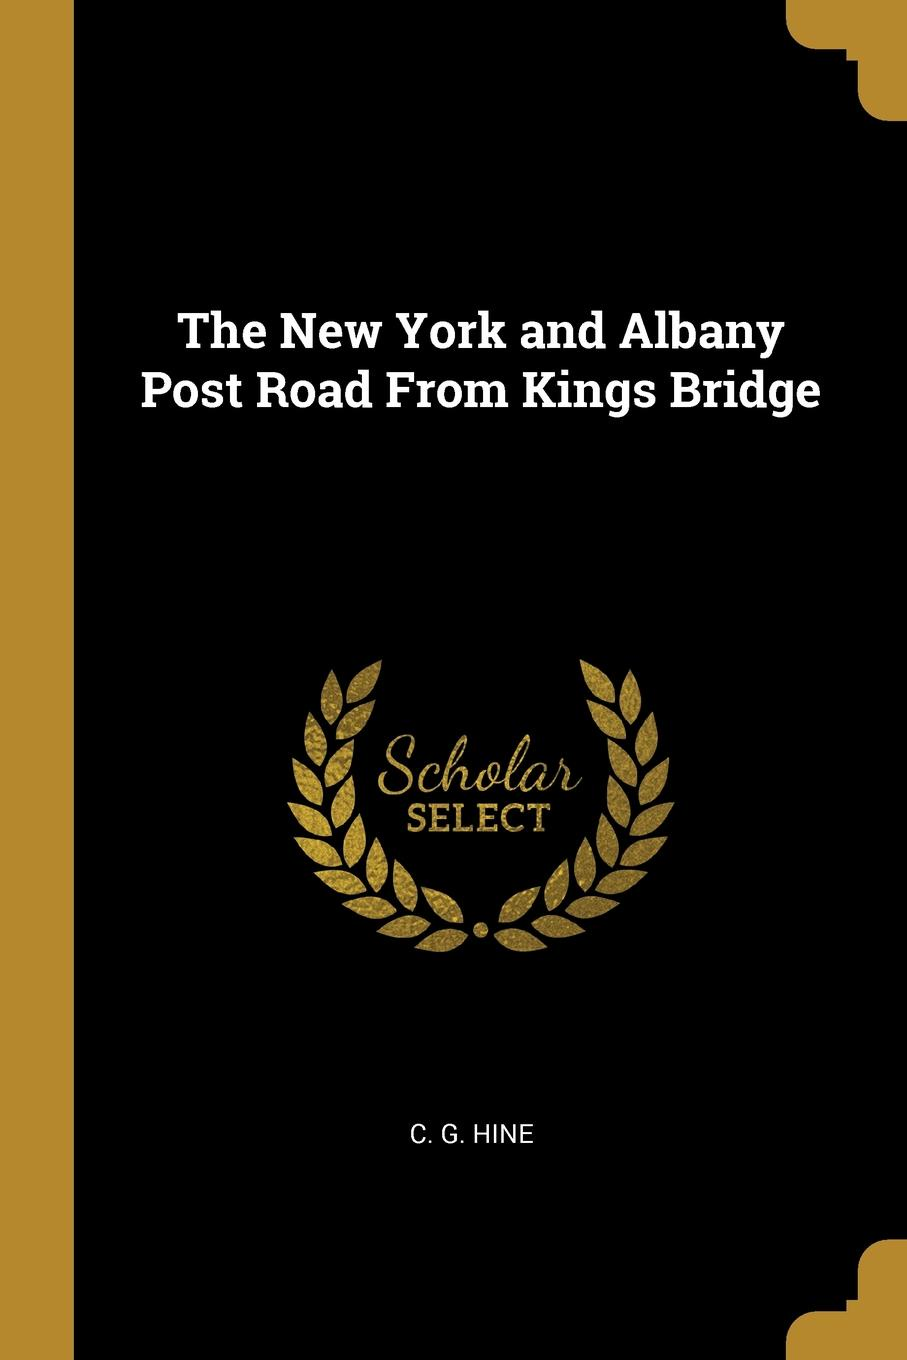 C. G. Hine The New York and Albany Post Road From Kings Bridge c g hine the new york and albany post road from kings bridge to the ferry at crawlier over against albany being an account of a jaunt on foot made at sundry may and november nineteen hundred and five